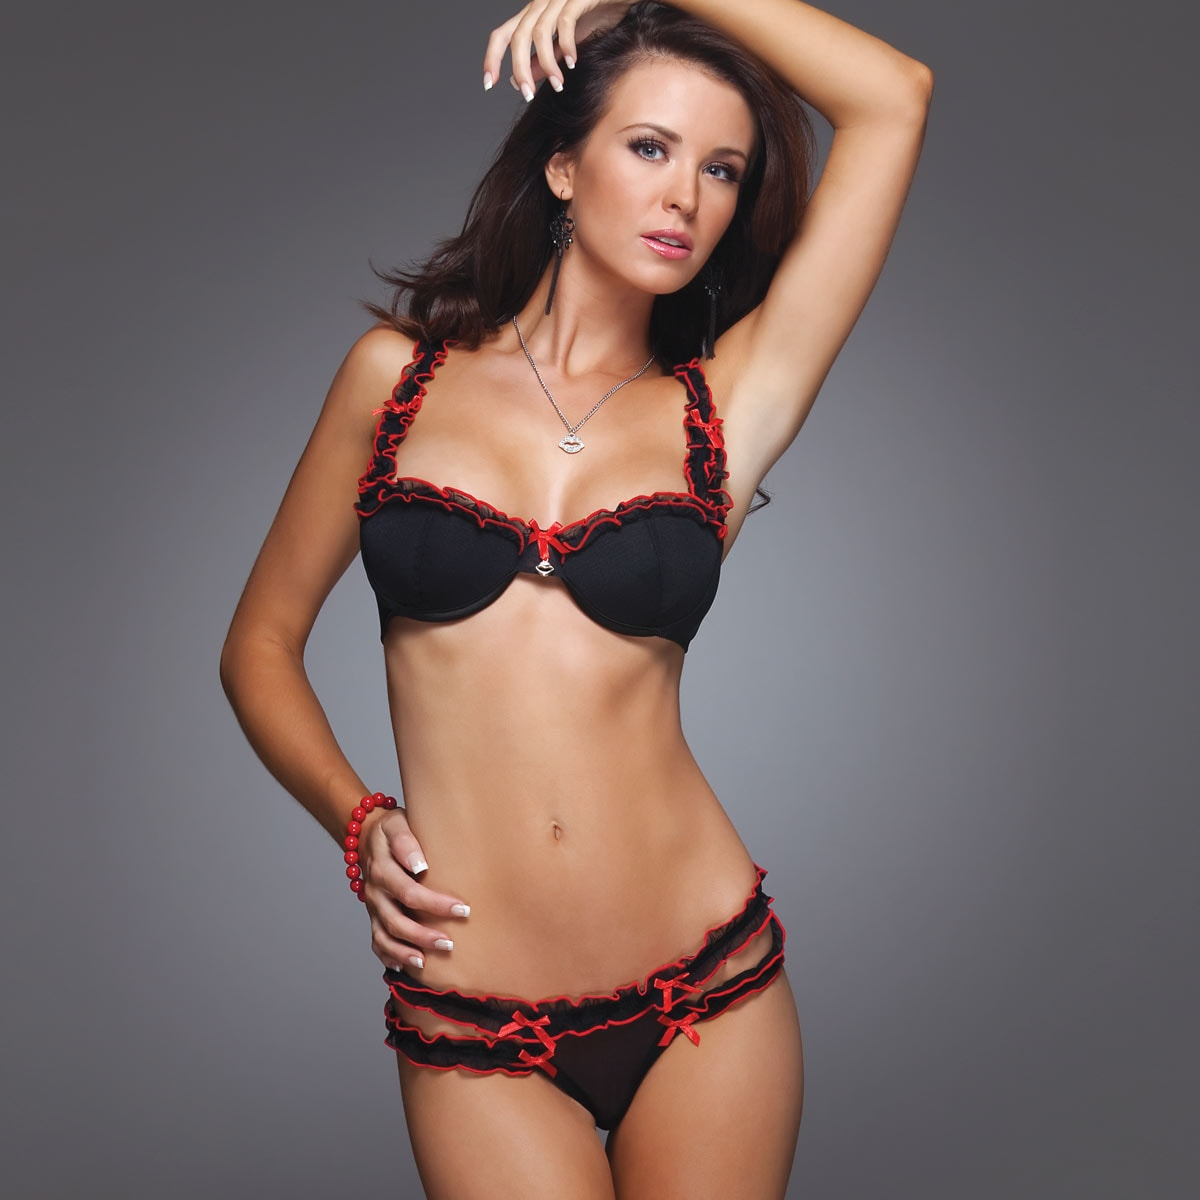 Women's Mesh Bra and Ruffle Thong Lingerie Set